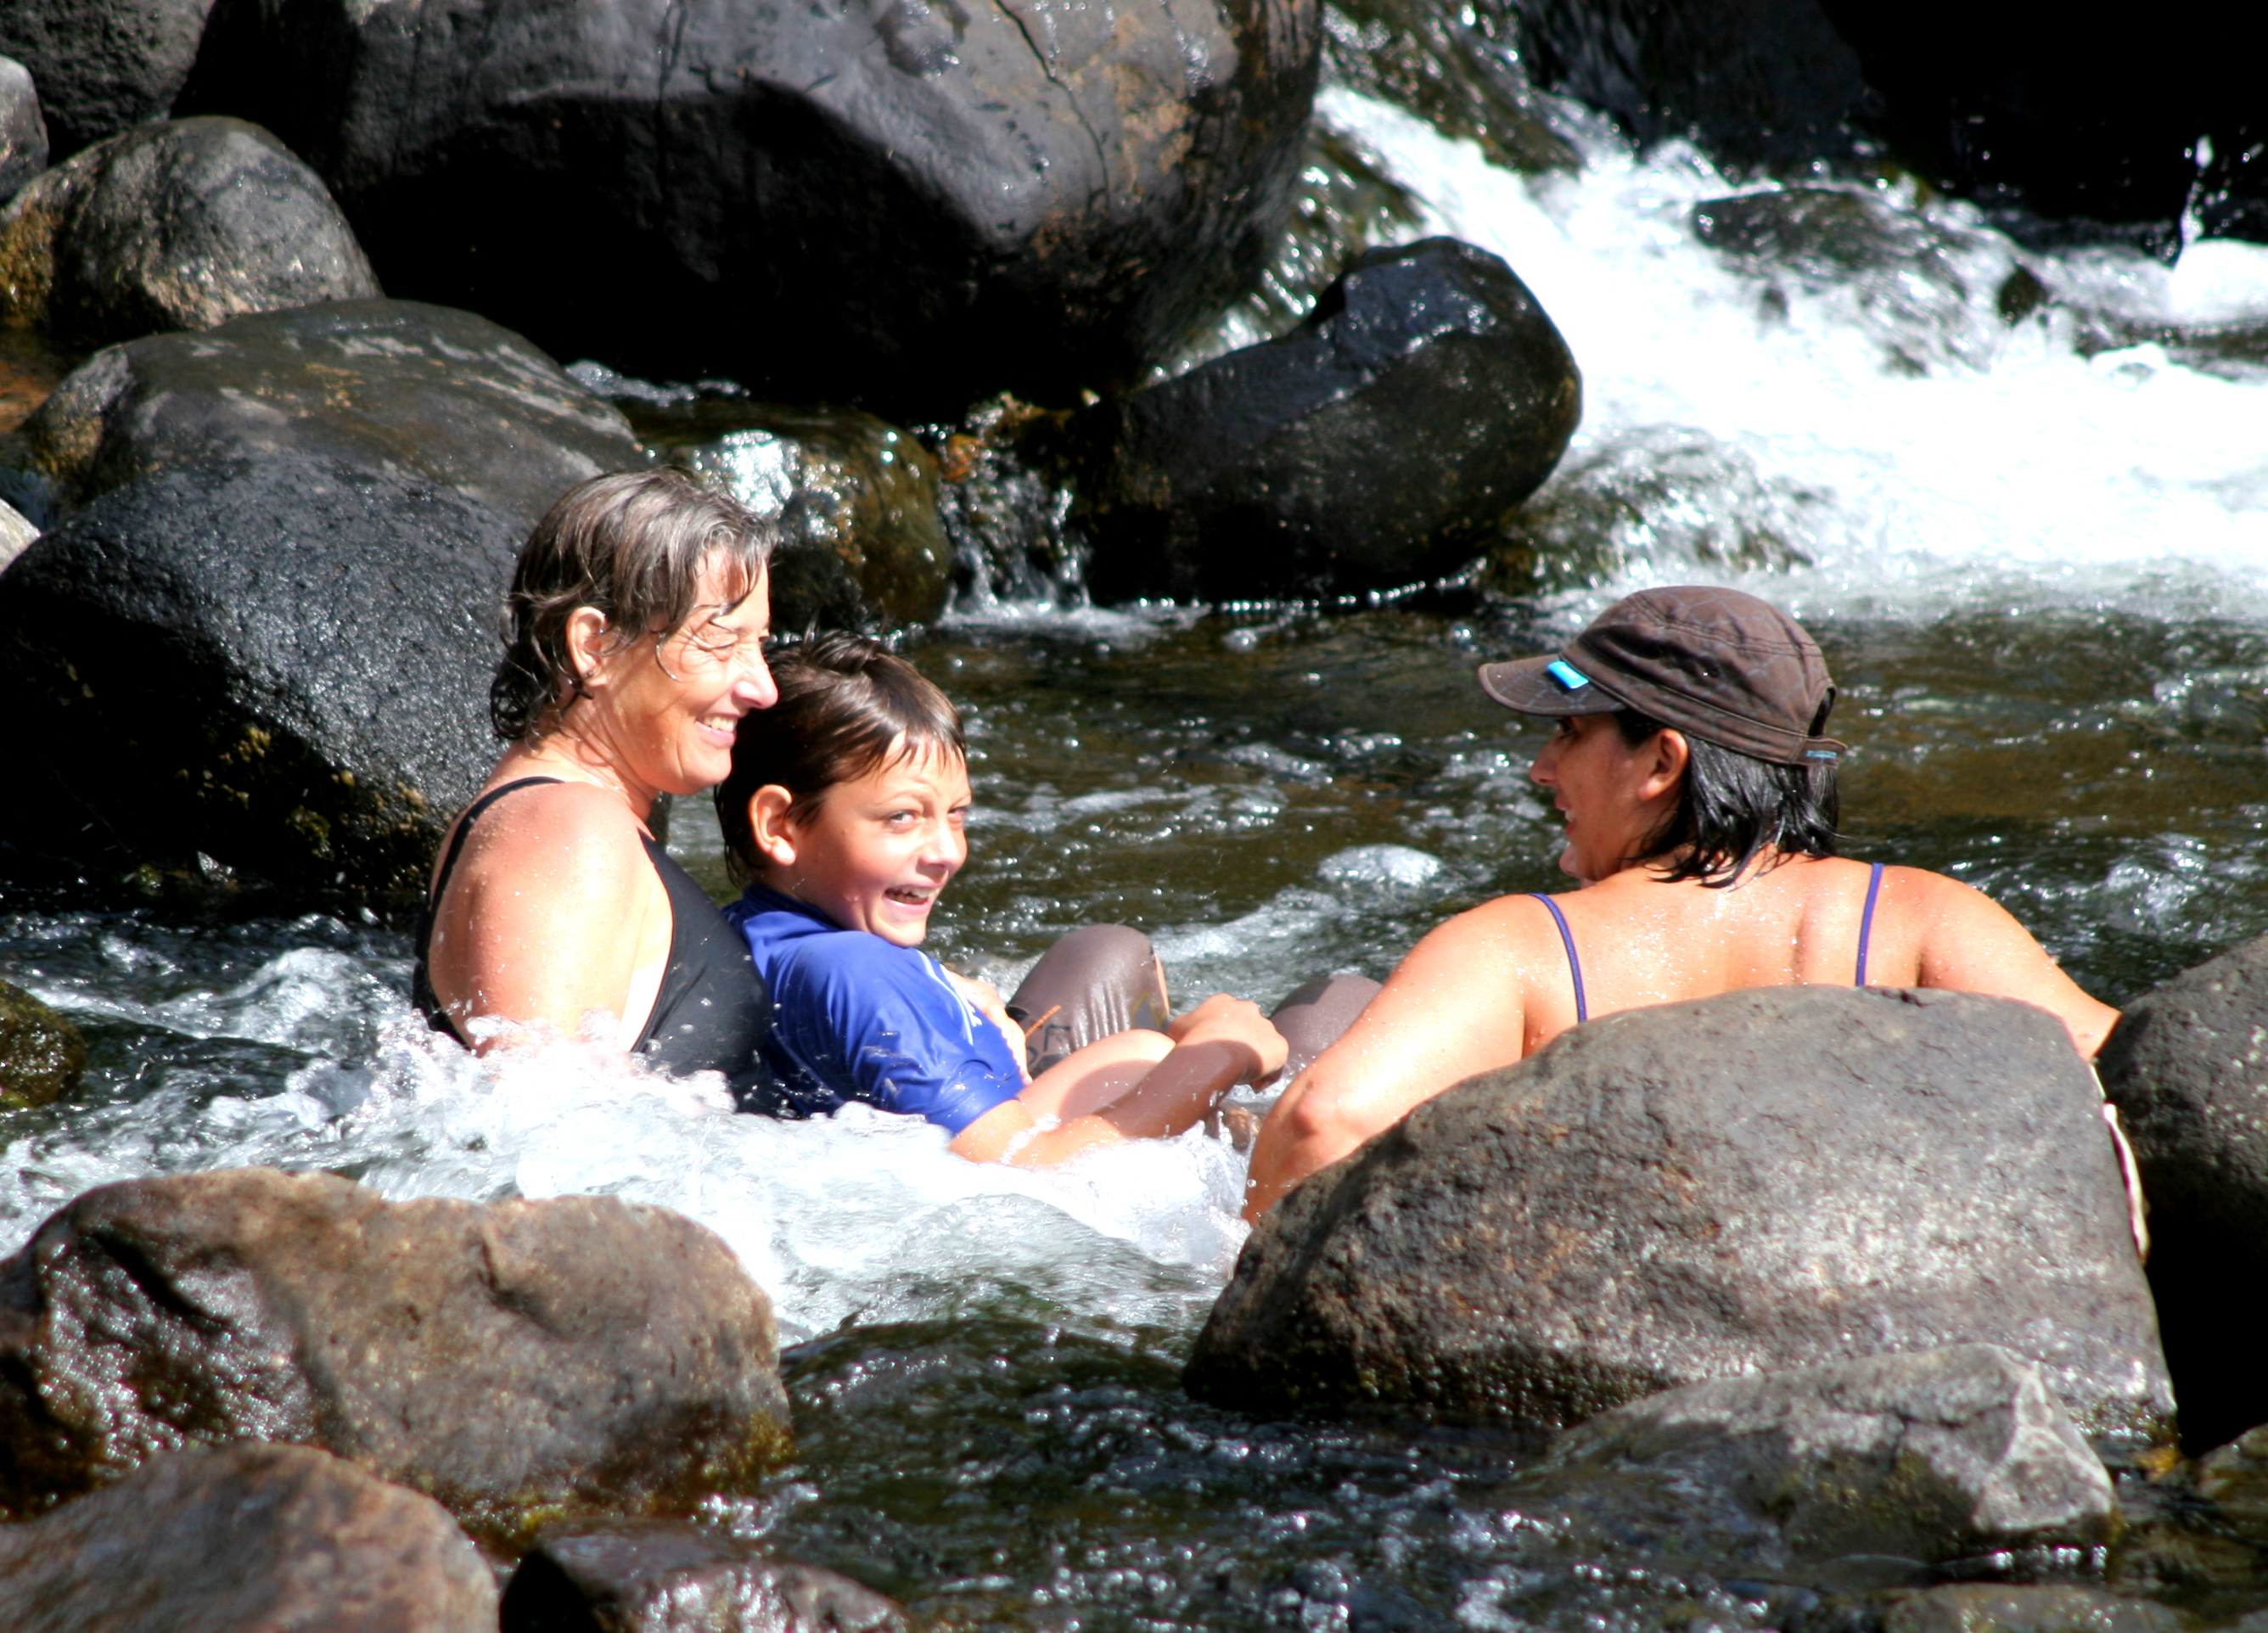 Two women and a child sitting in the flowing water of a river.  Rocks and boulders around them.